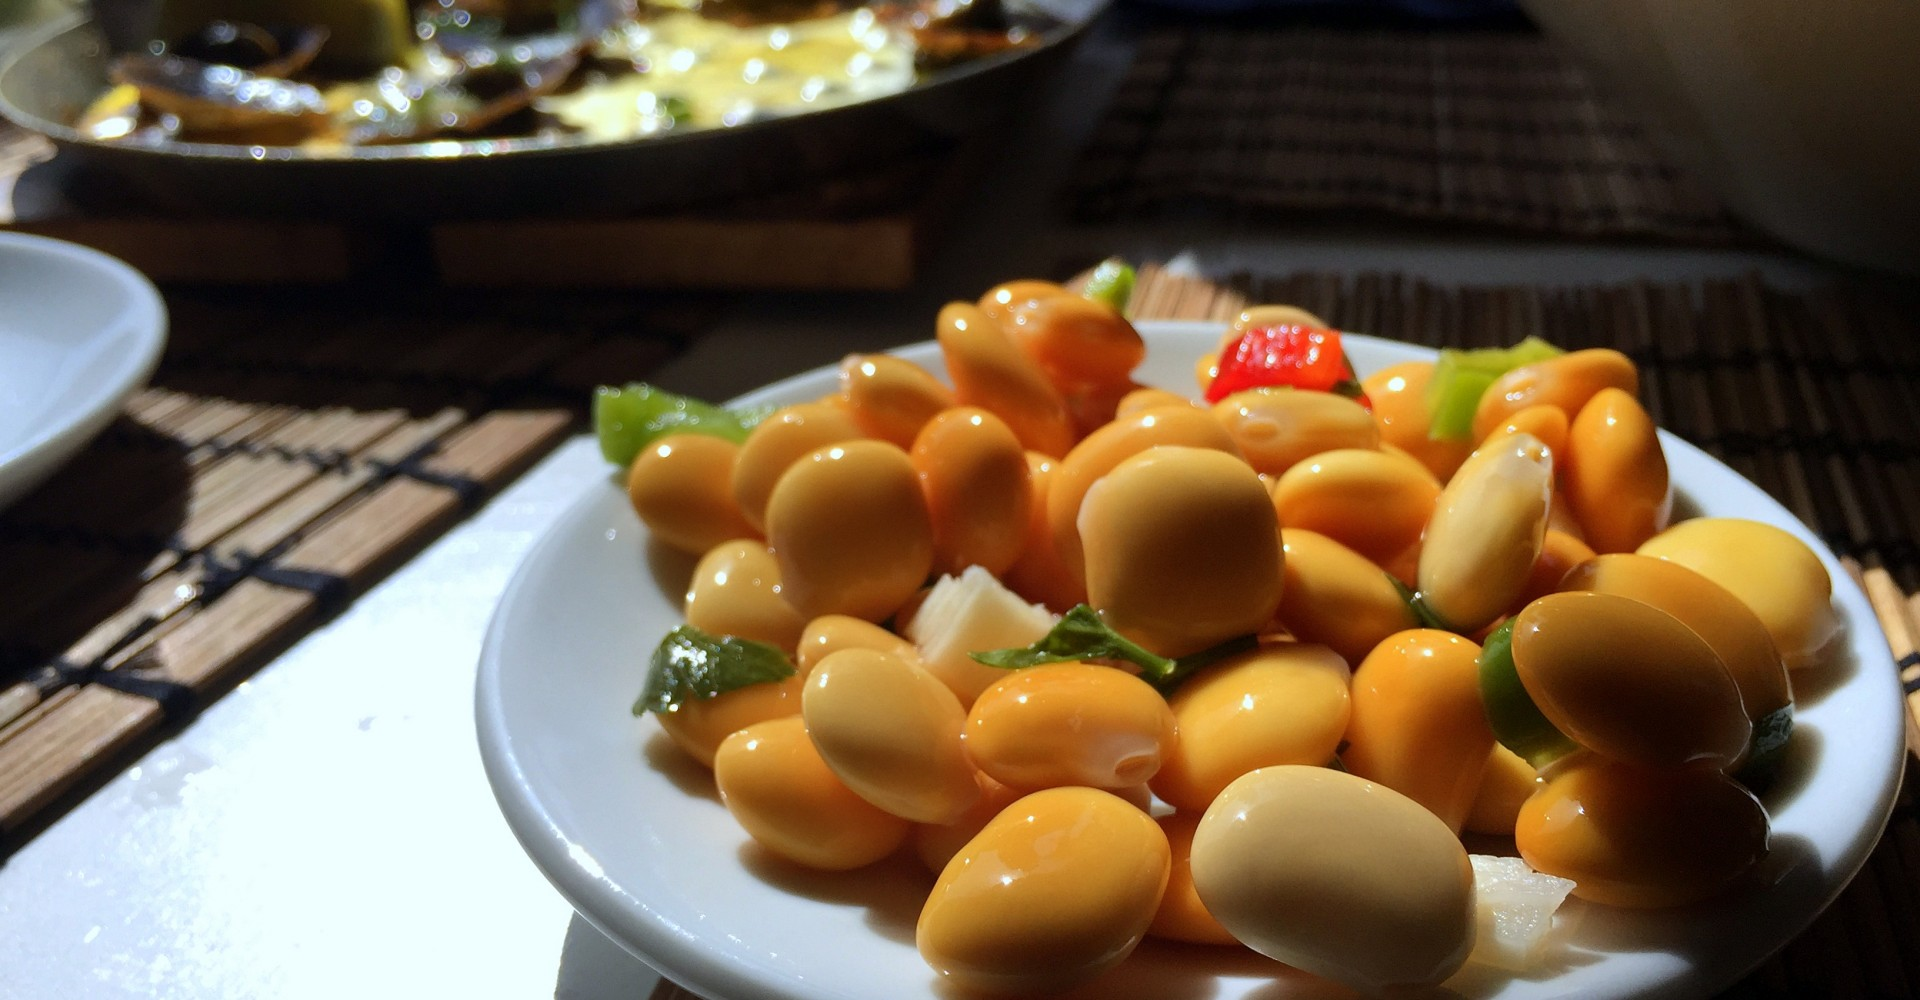 Recipe for Marinated Tremoços (Lupini beans) from Portugal